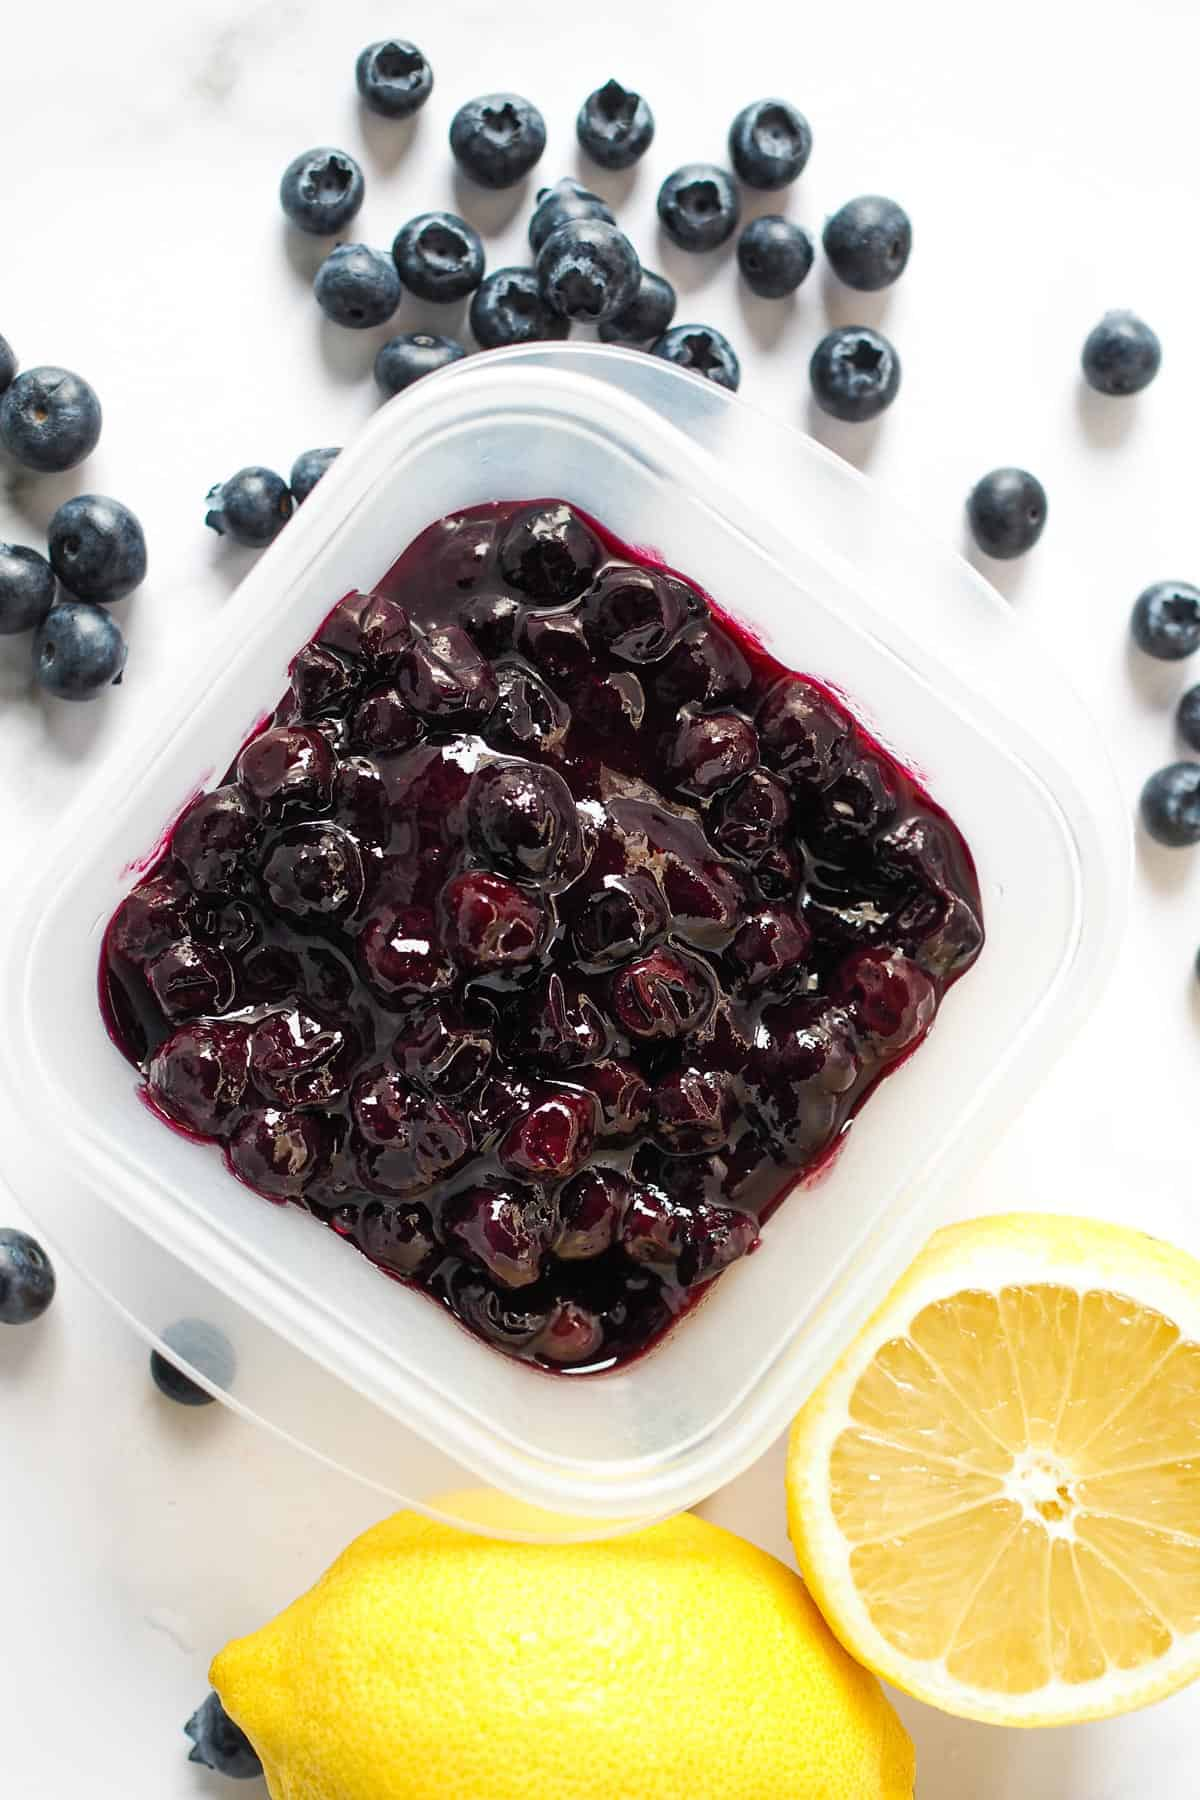 Blueberry pie filling in a square container, with lemon and fresh blueberries on the side